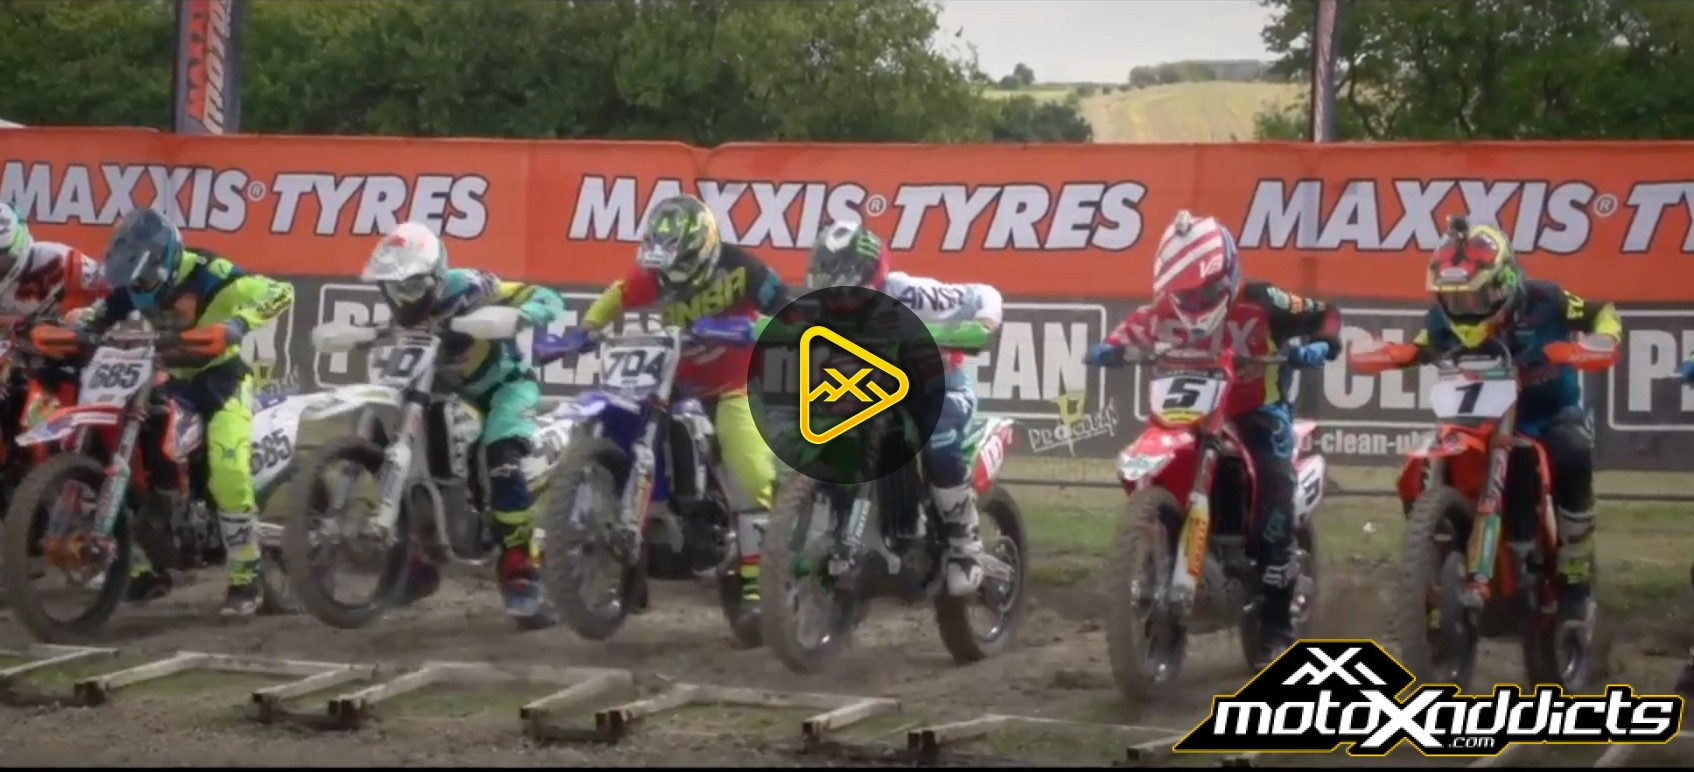 Foxhill Highlights – 2016 Maxxis British Motocross Finale